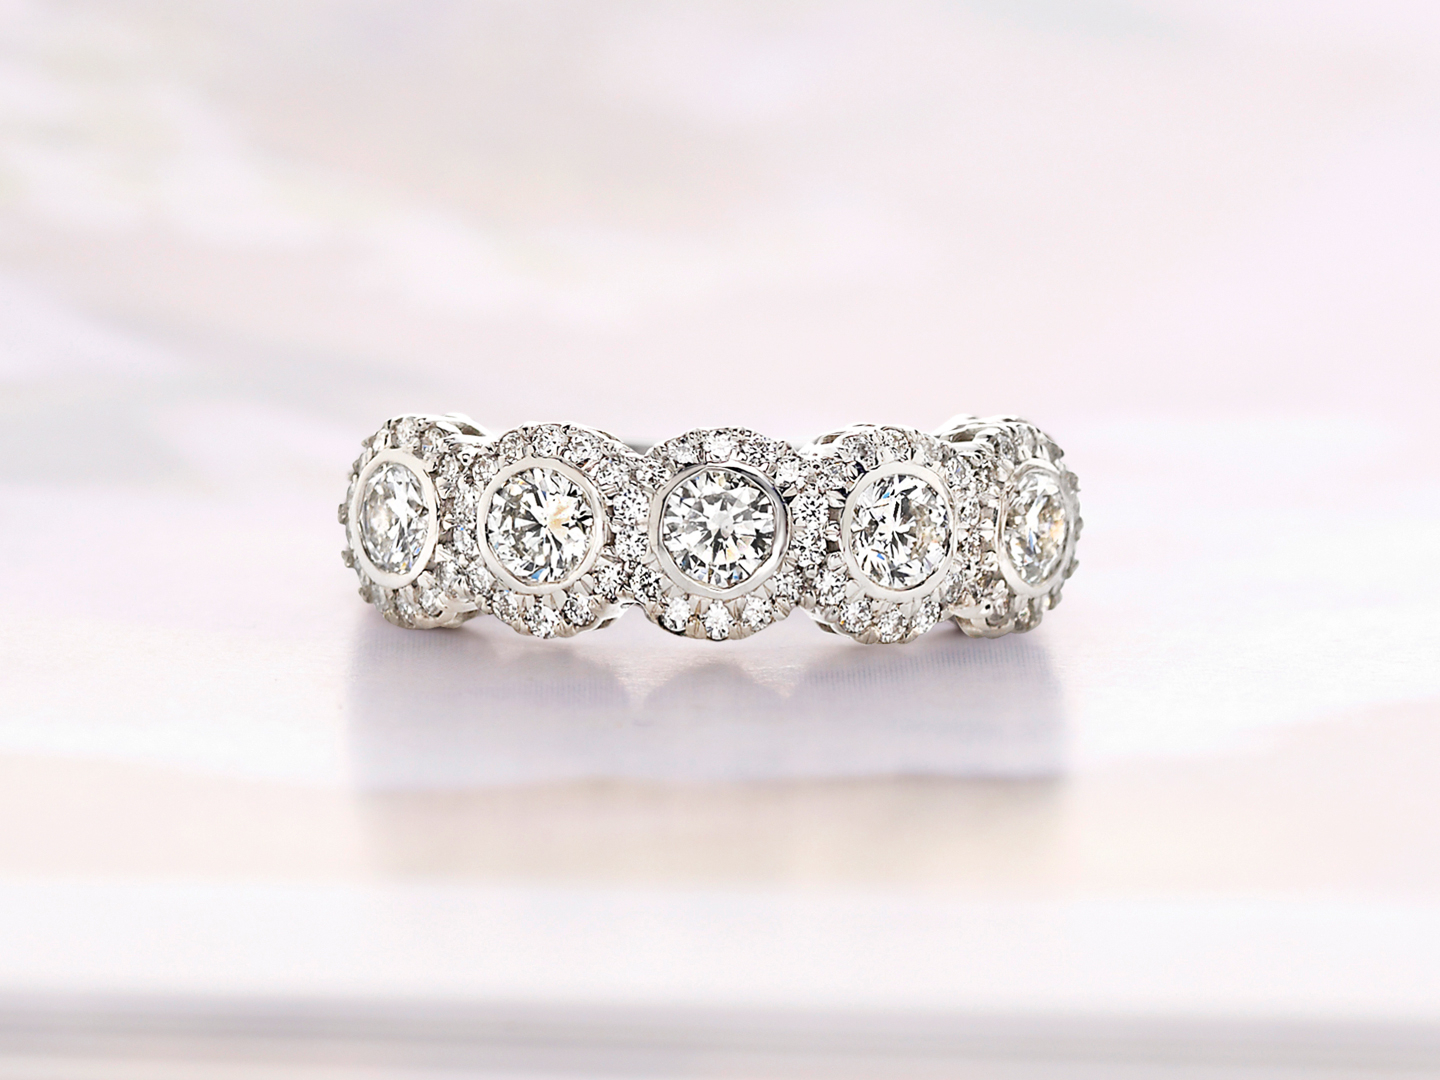 Beautiful Bezel Set Diamond Rings | Brilliant Earth With Regard To Most Recently Released Diamond Five Stone Anniversary Bands In Gold (View 14 of 25)